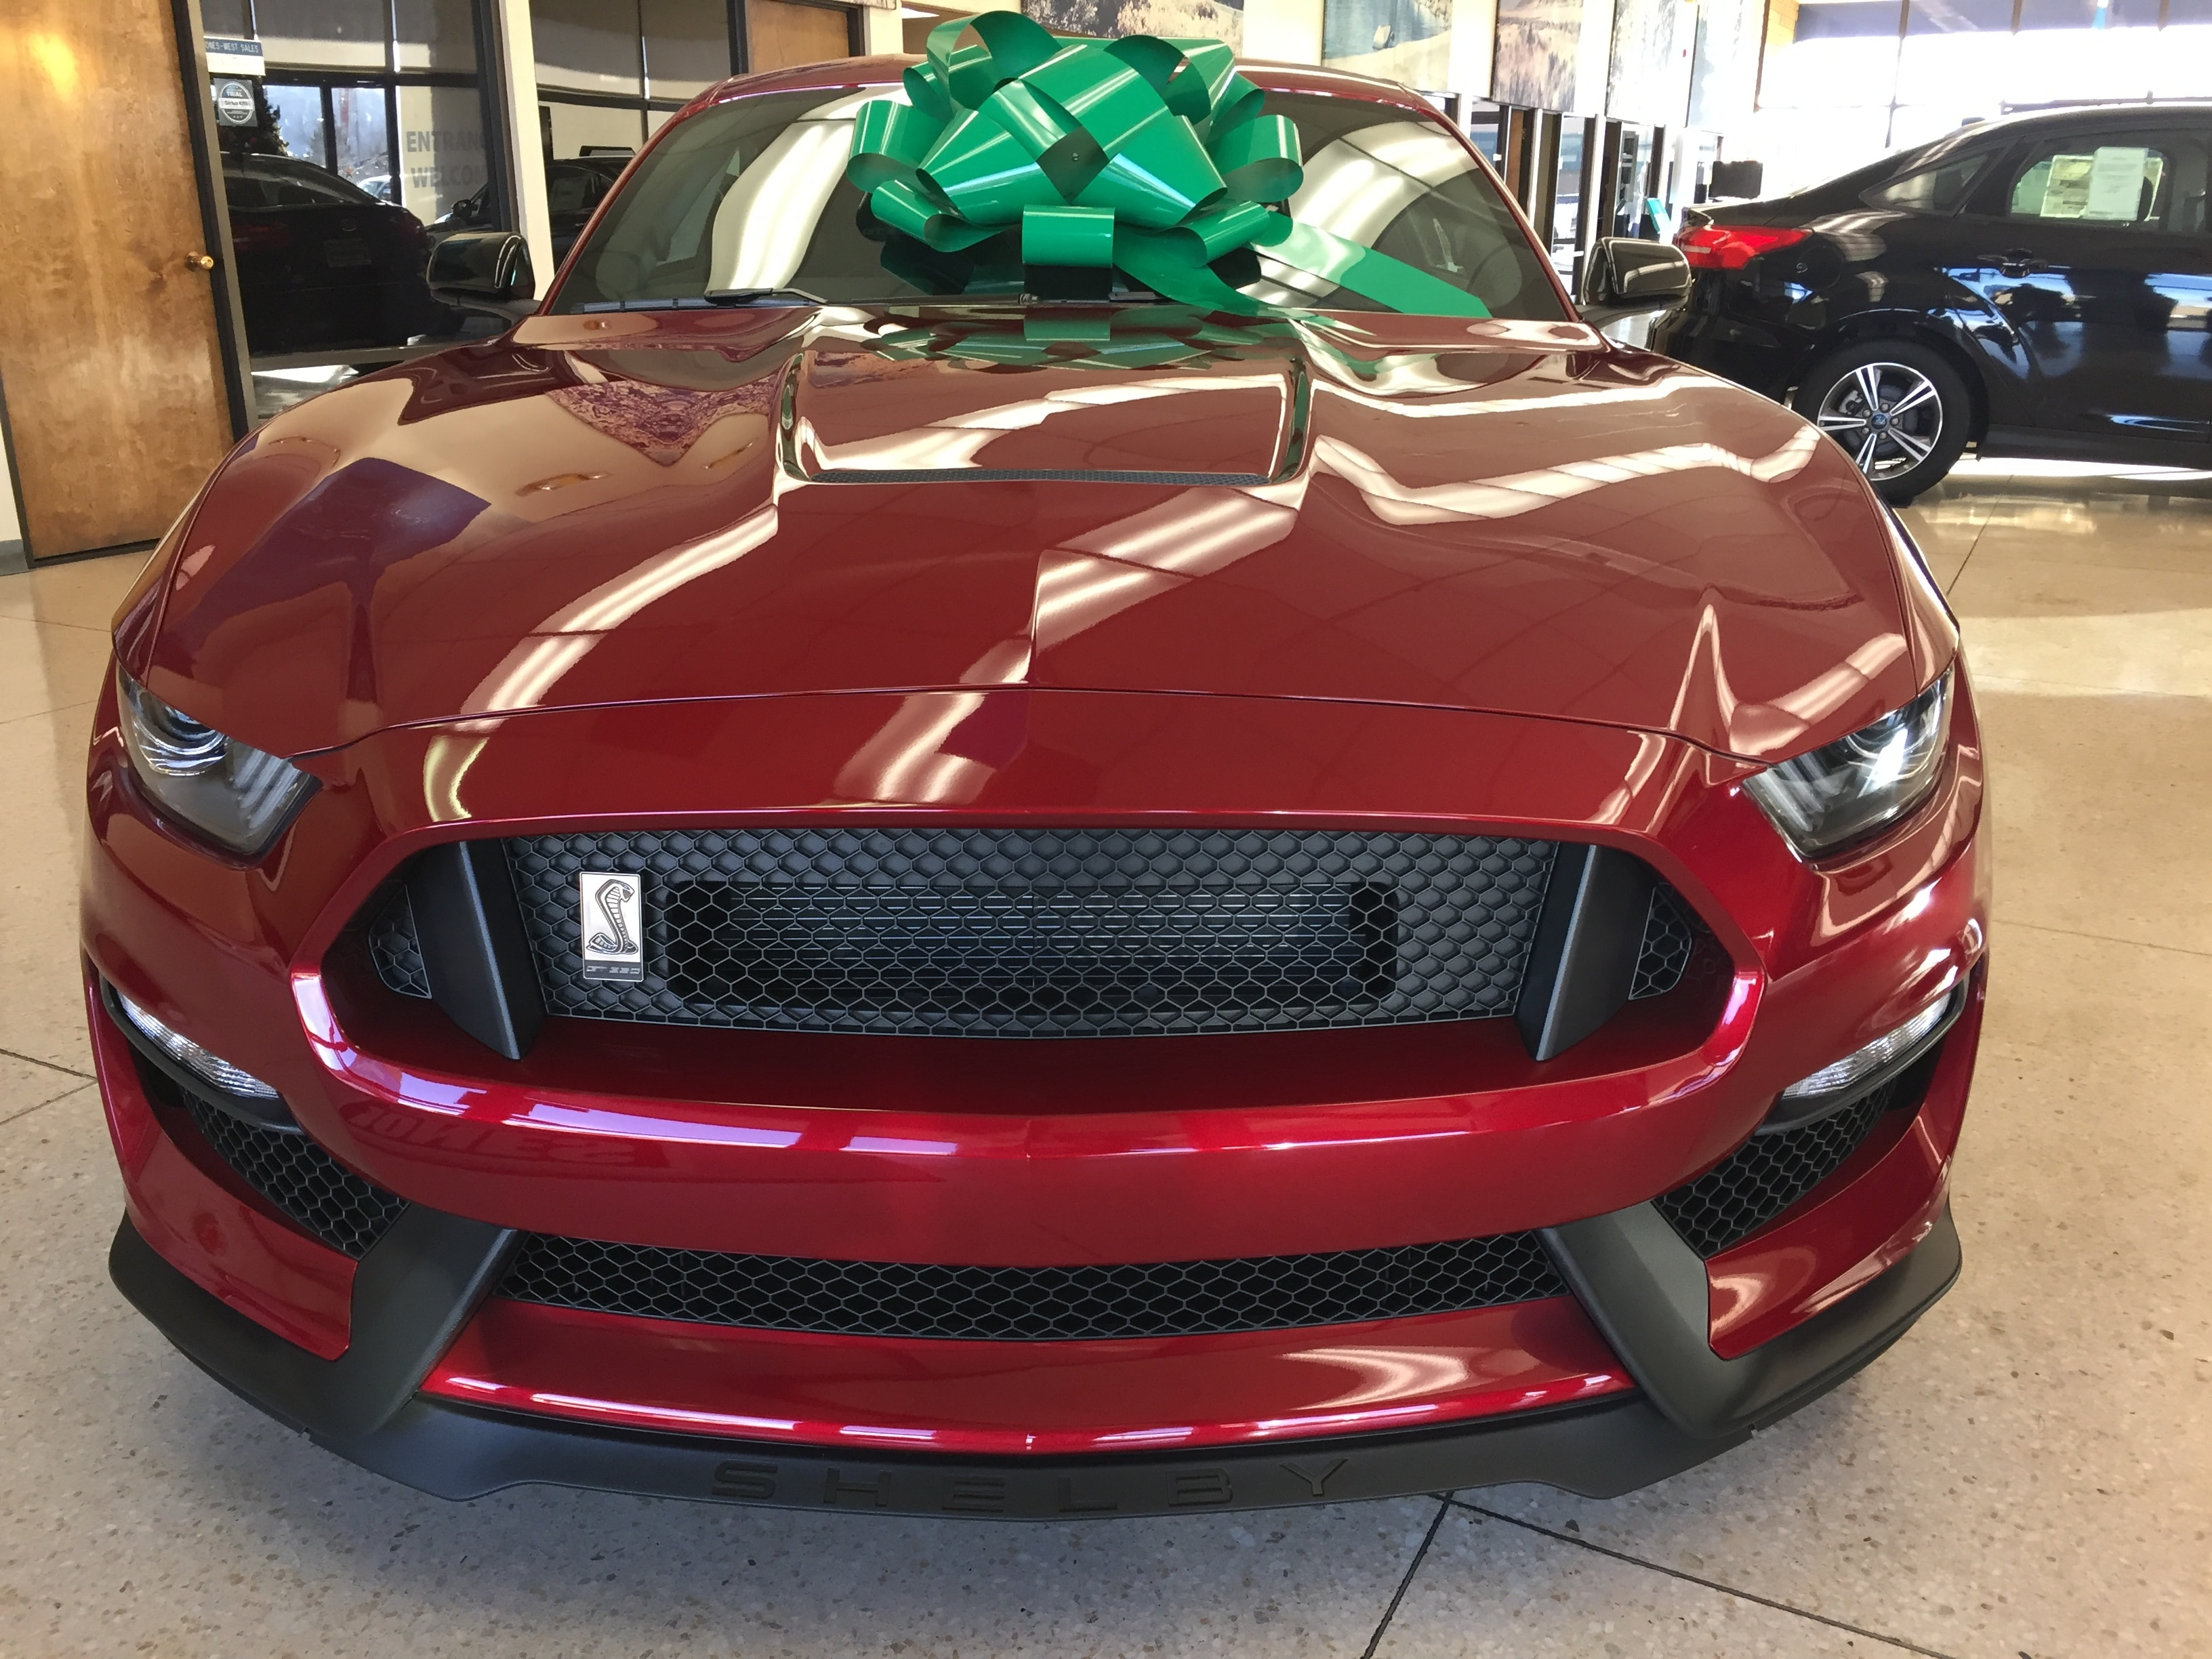 2017 ford shelby gt350 for sale in reno nv cargurus. Black Bedroom Furniture Sets. Home Design Ideas